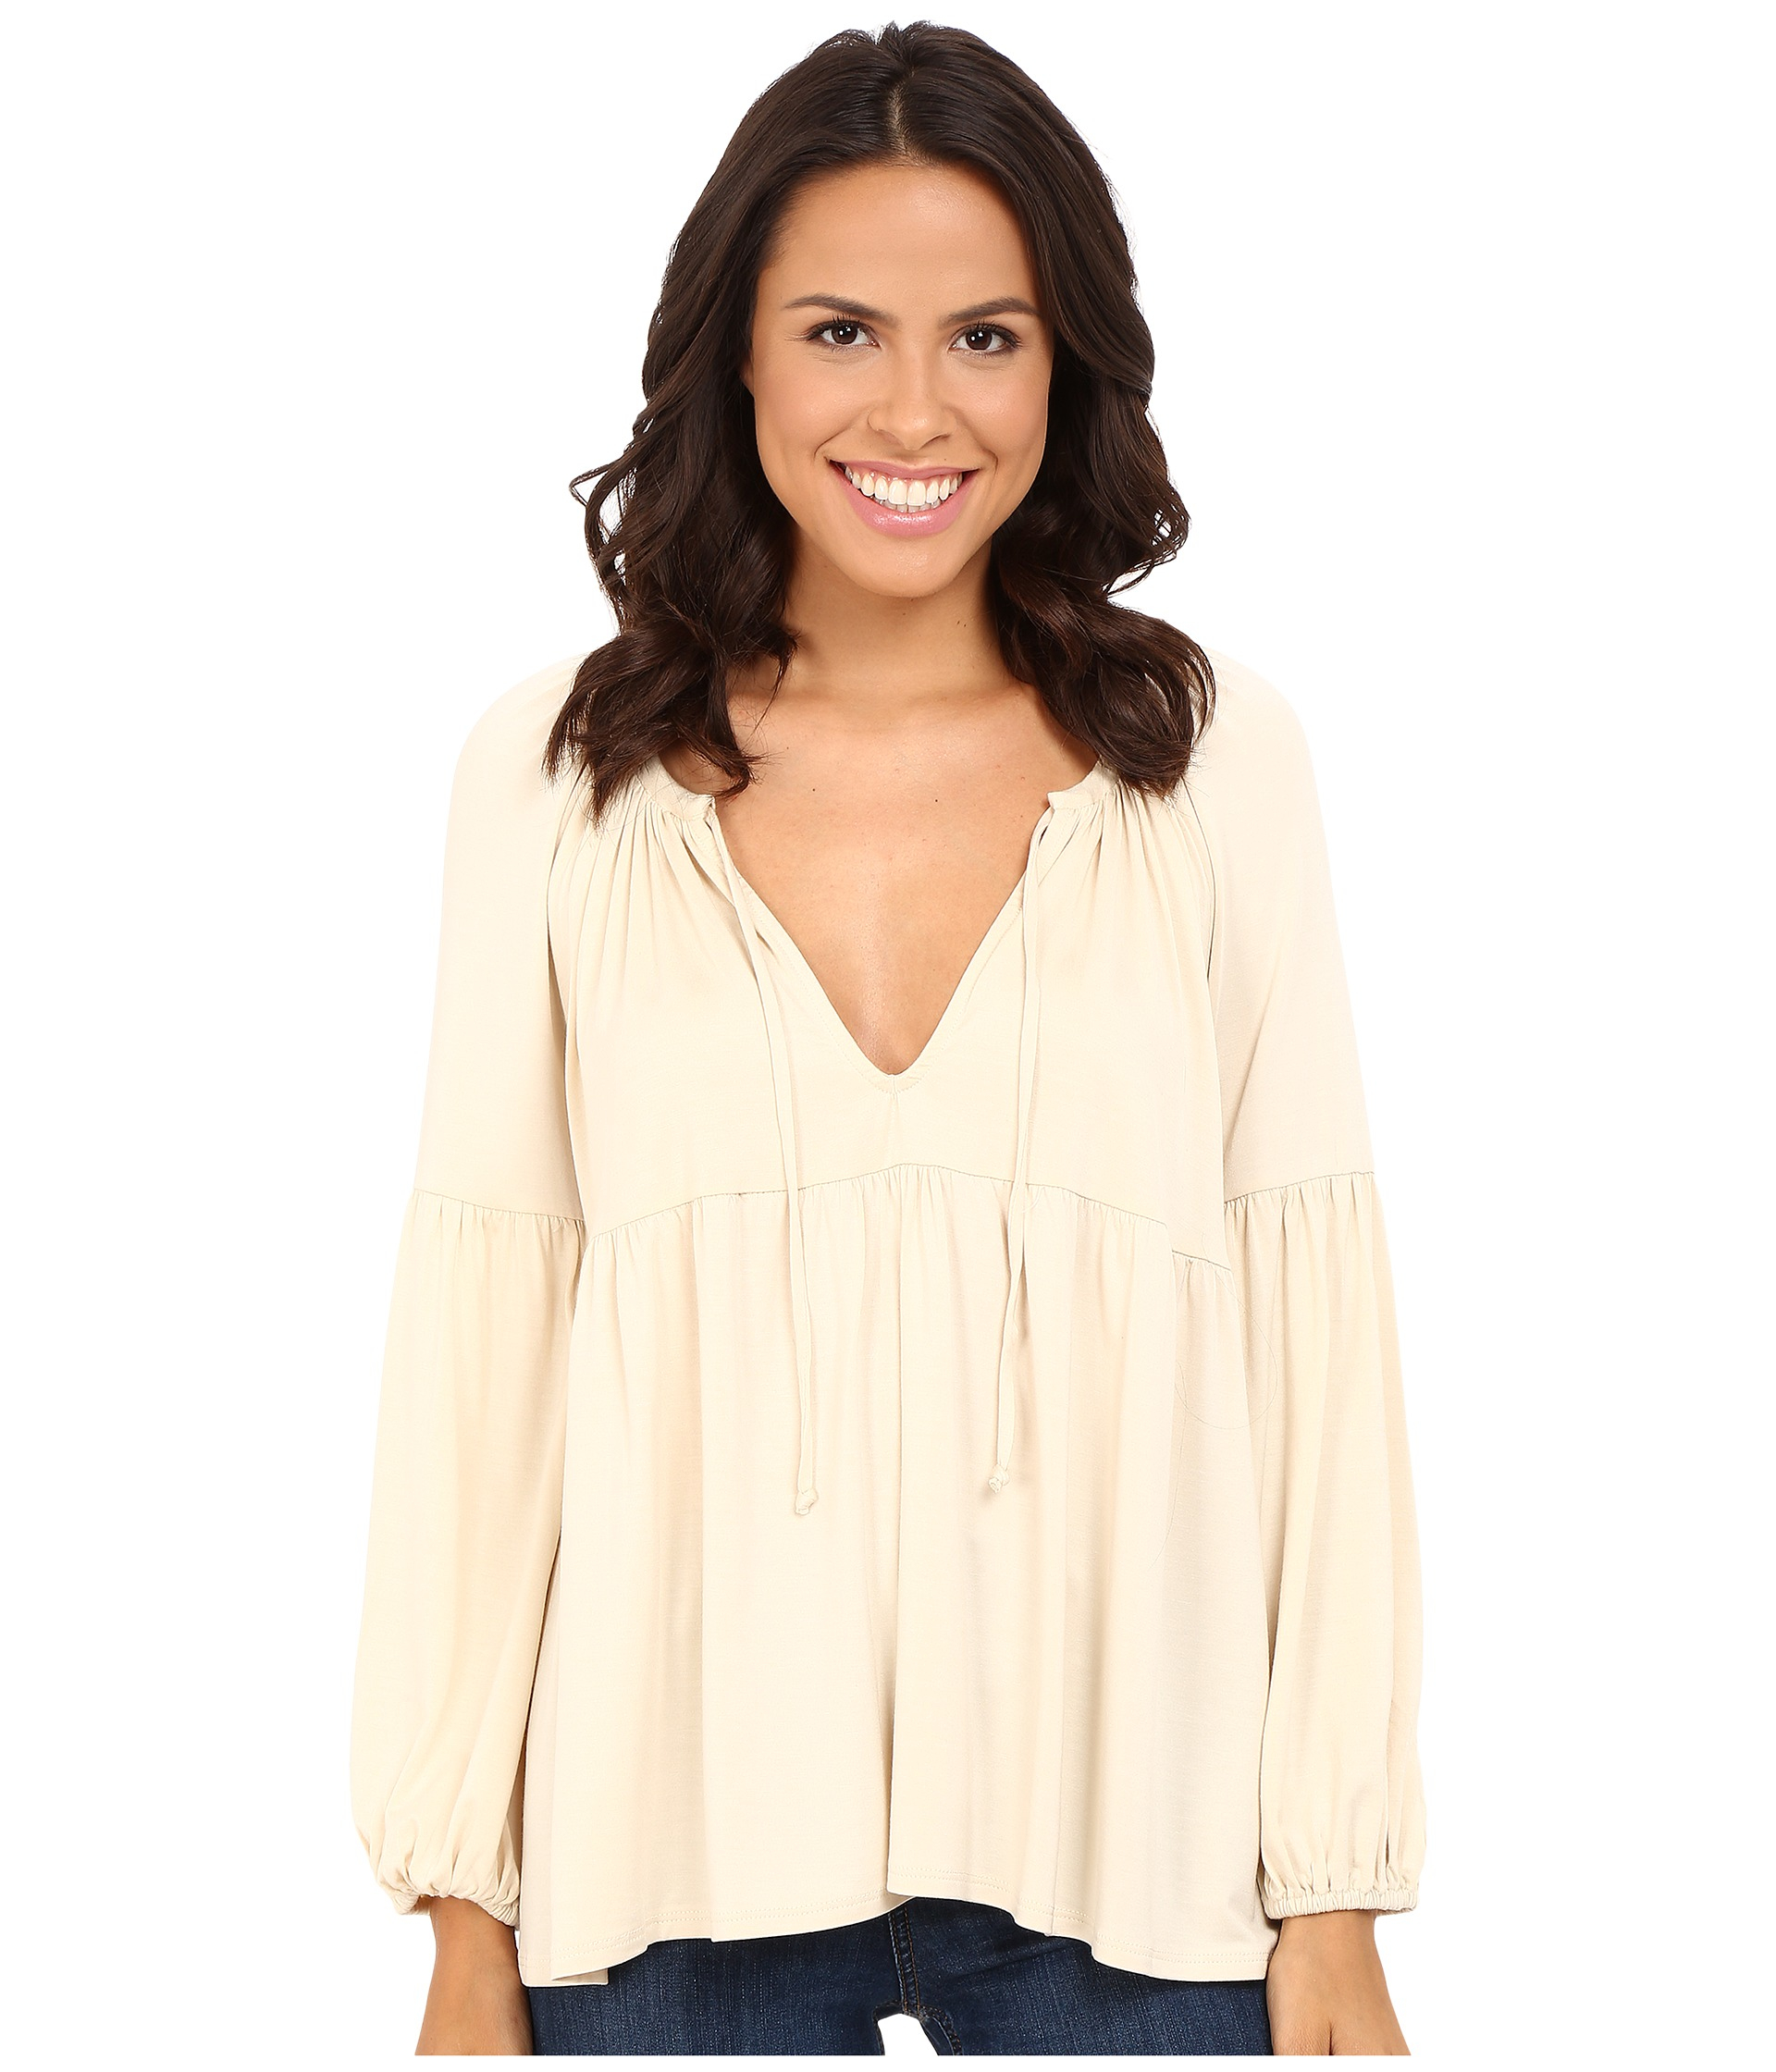 Low Price Fee Shipping Best Seller Cheap Online Rupert Top in Mustard Rachel Pally Eastbay Sale The Cheapest QBEvZ4